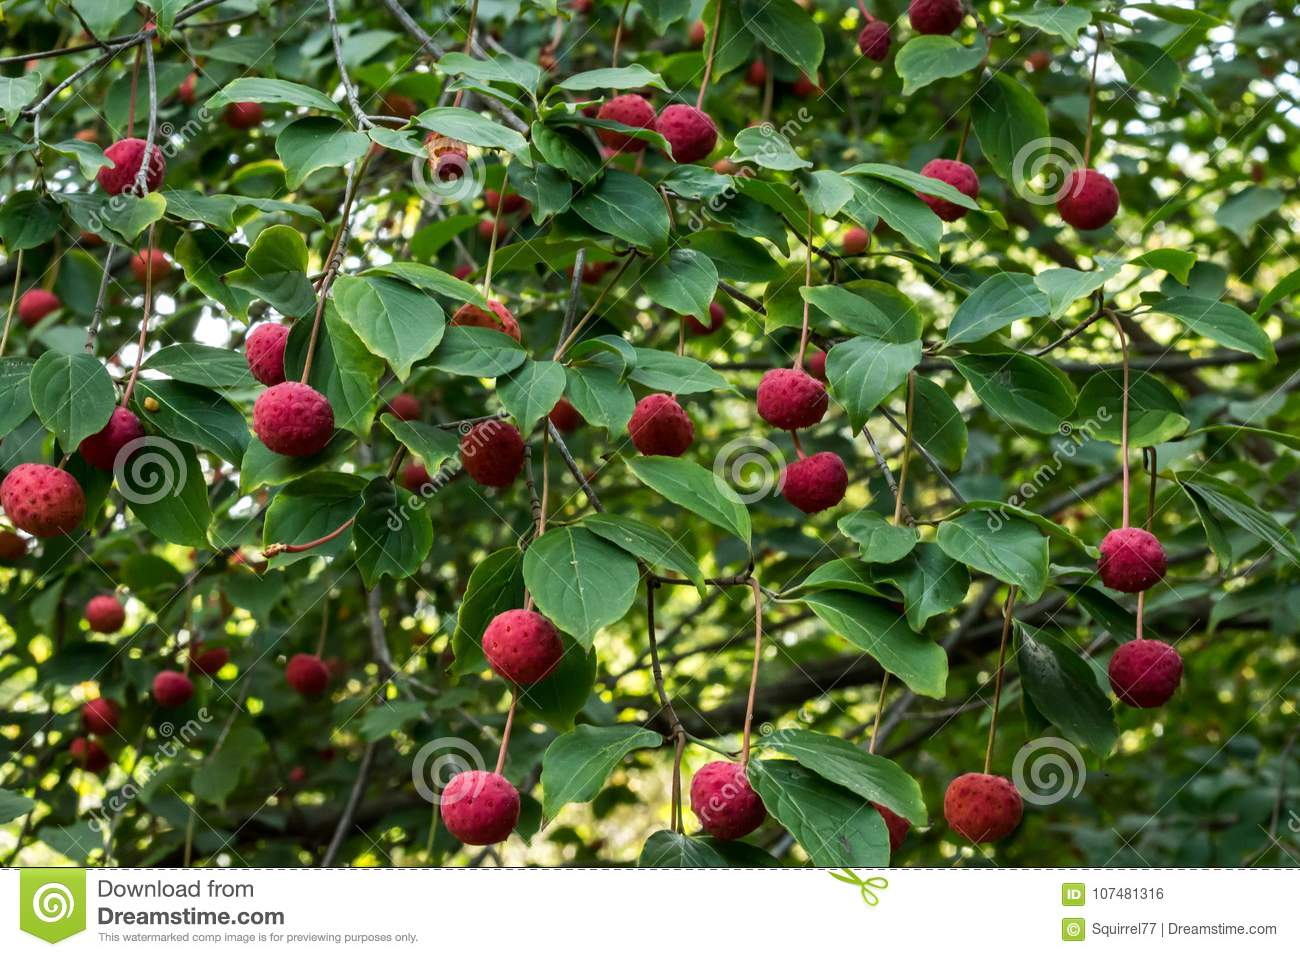 Red Fruit Berries On Dogwood Tree Against Green Leaves Stock Photo